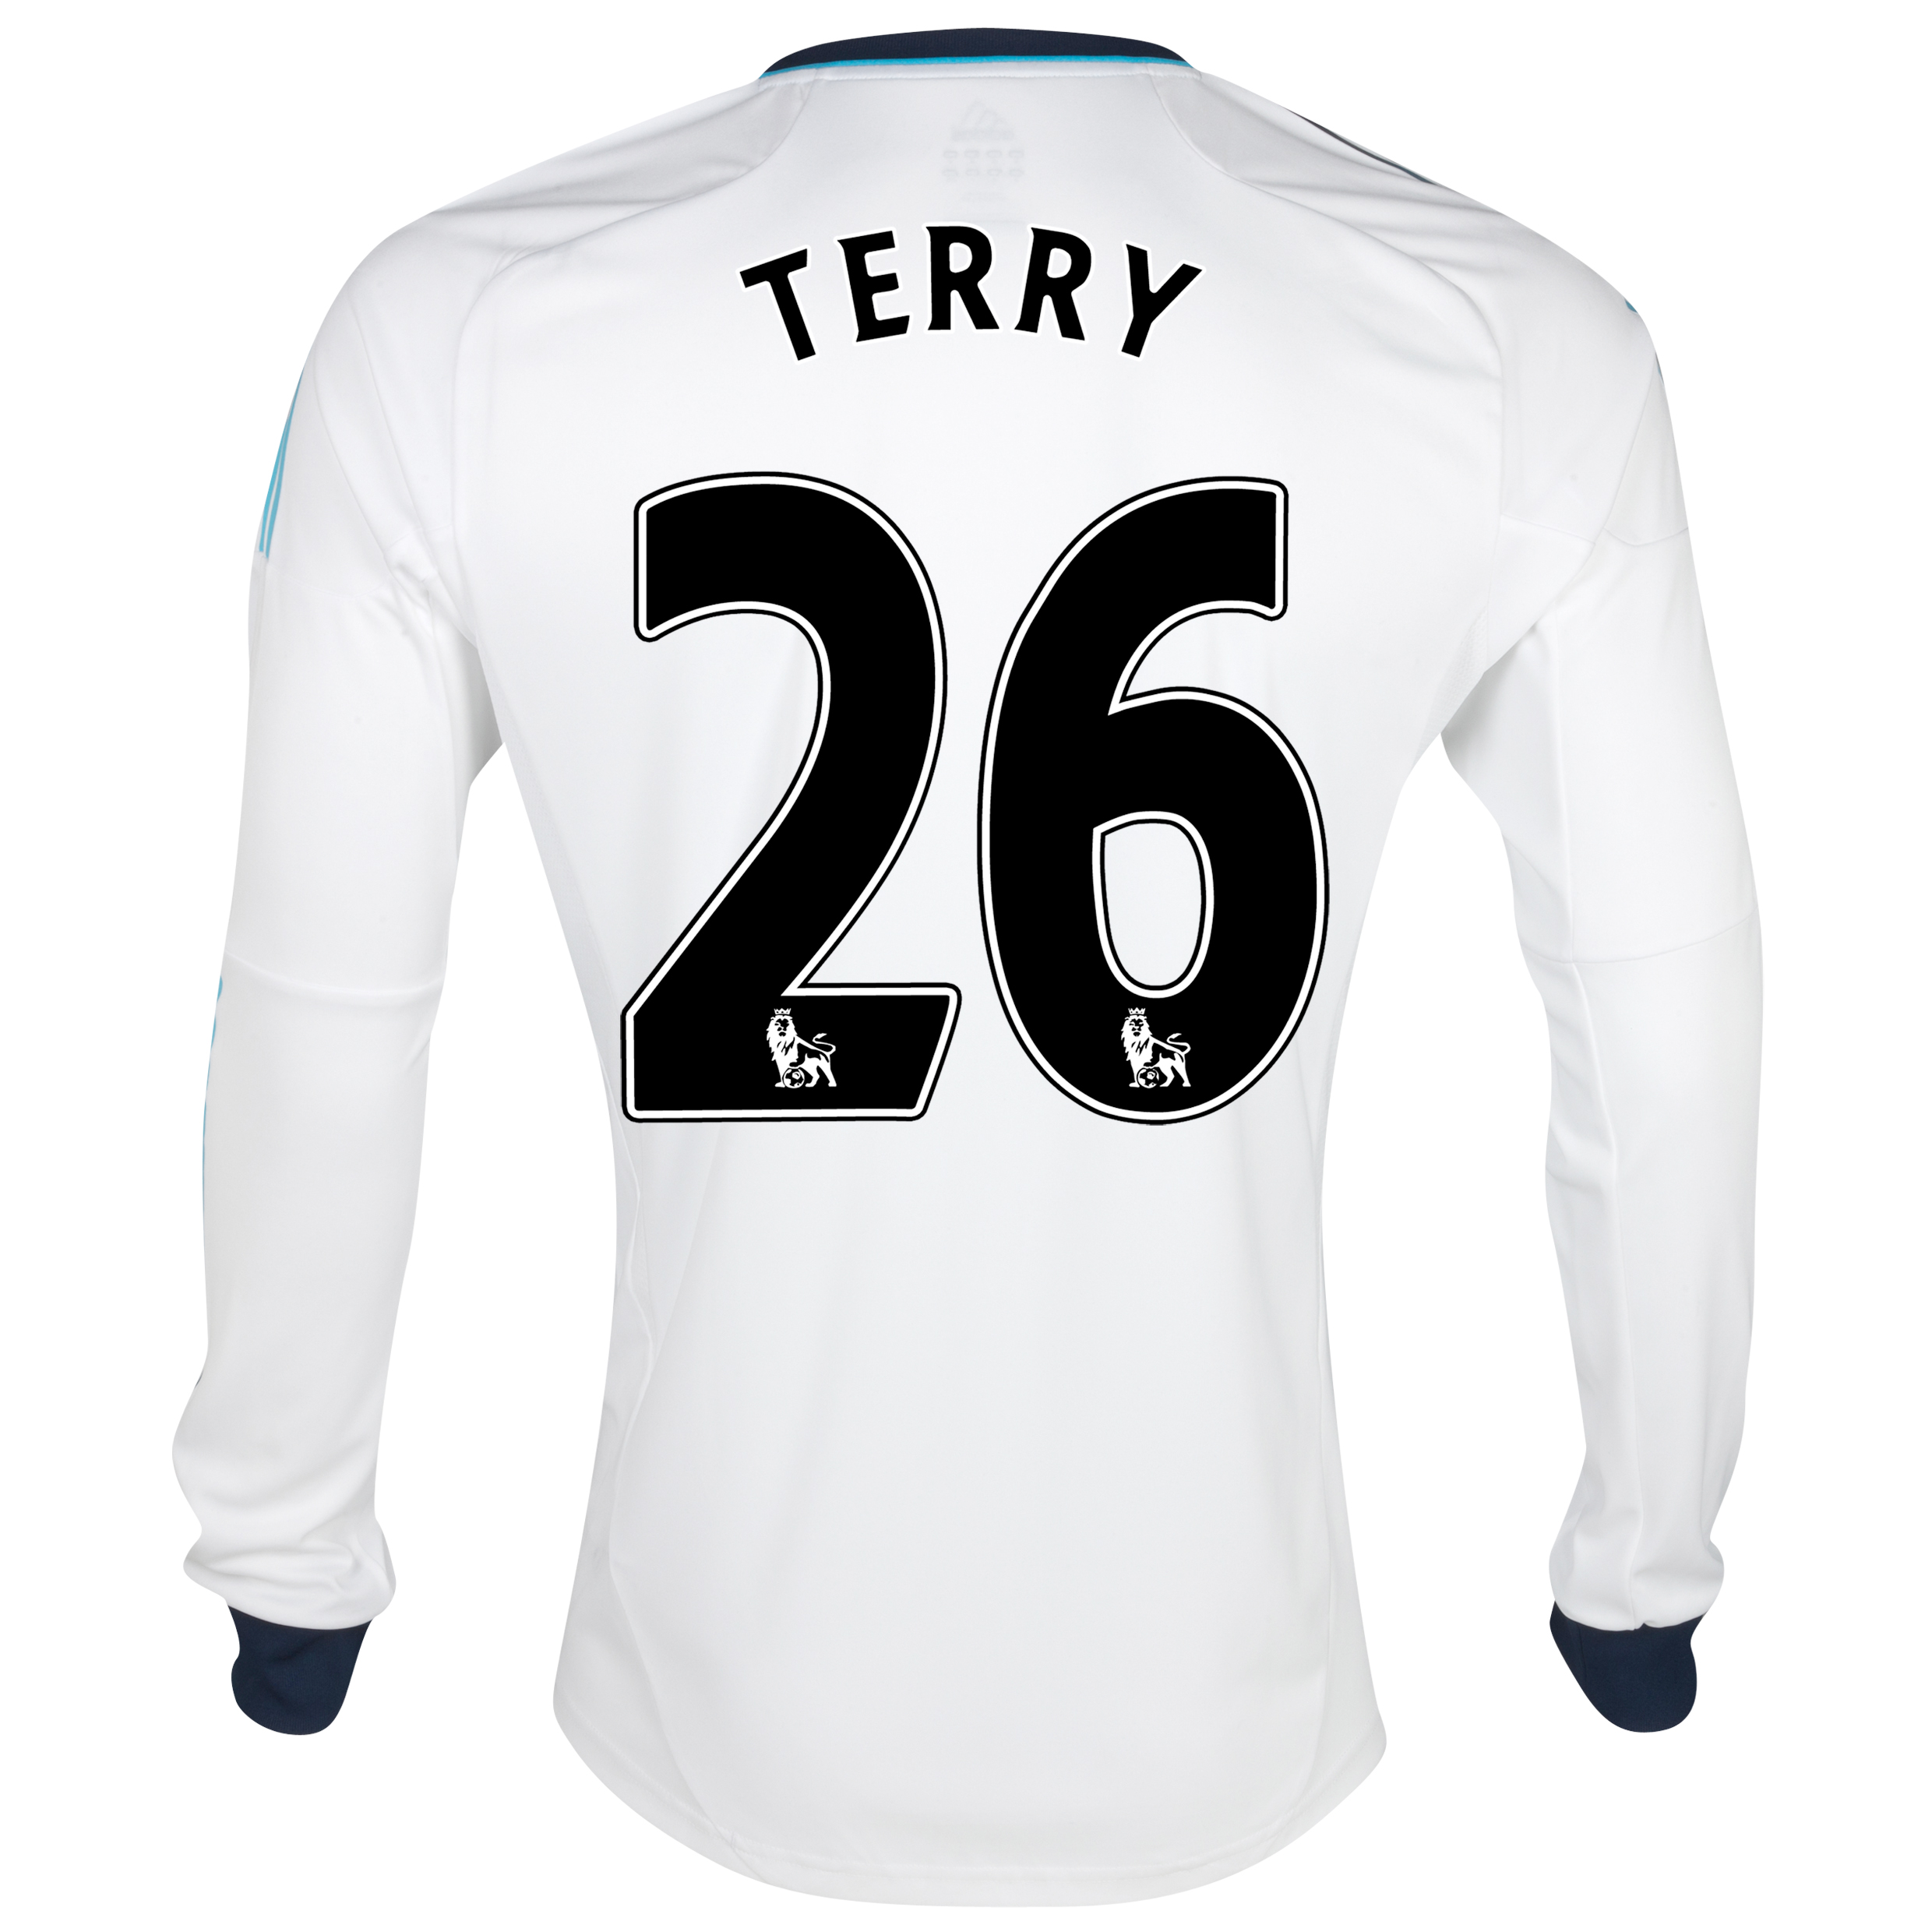 Chelsea Away Shirt 2012/13 - Long Sleeved - Kids with Terry 26 printing